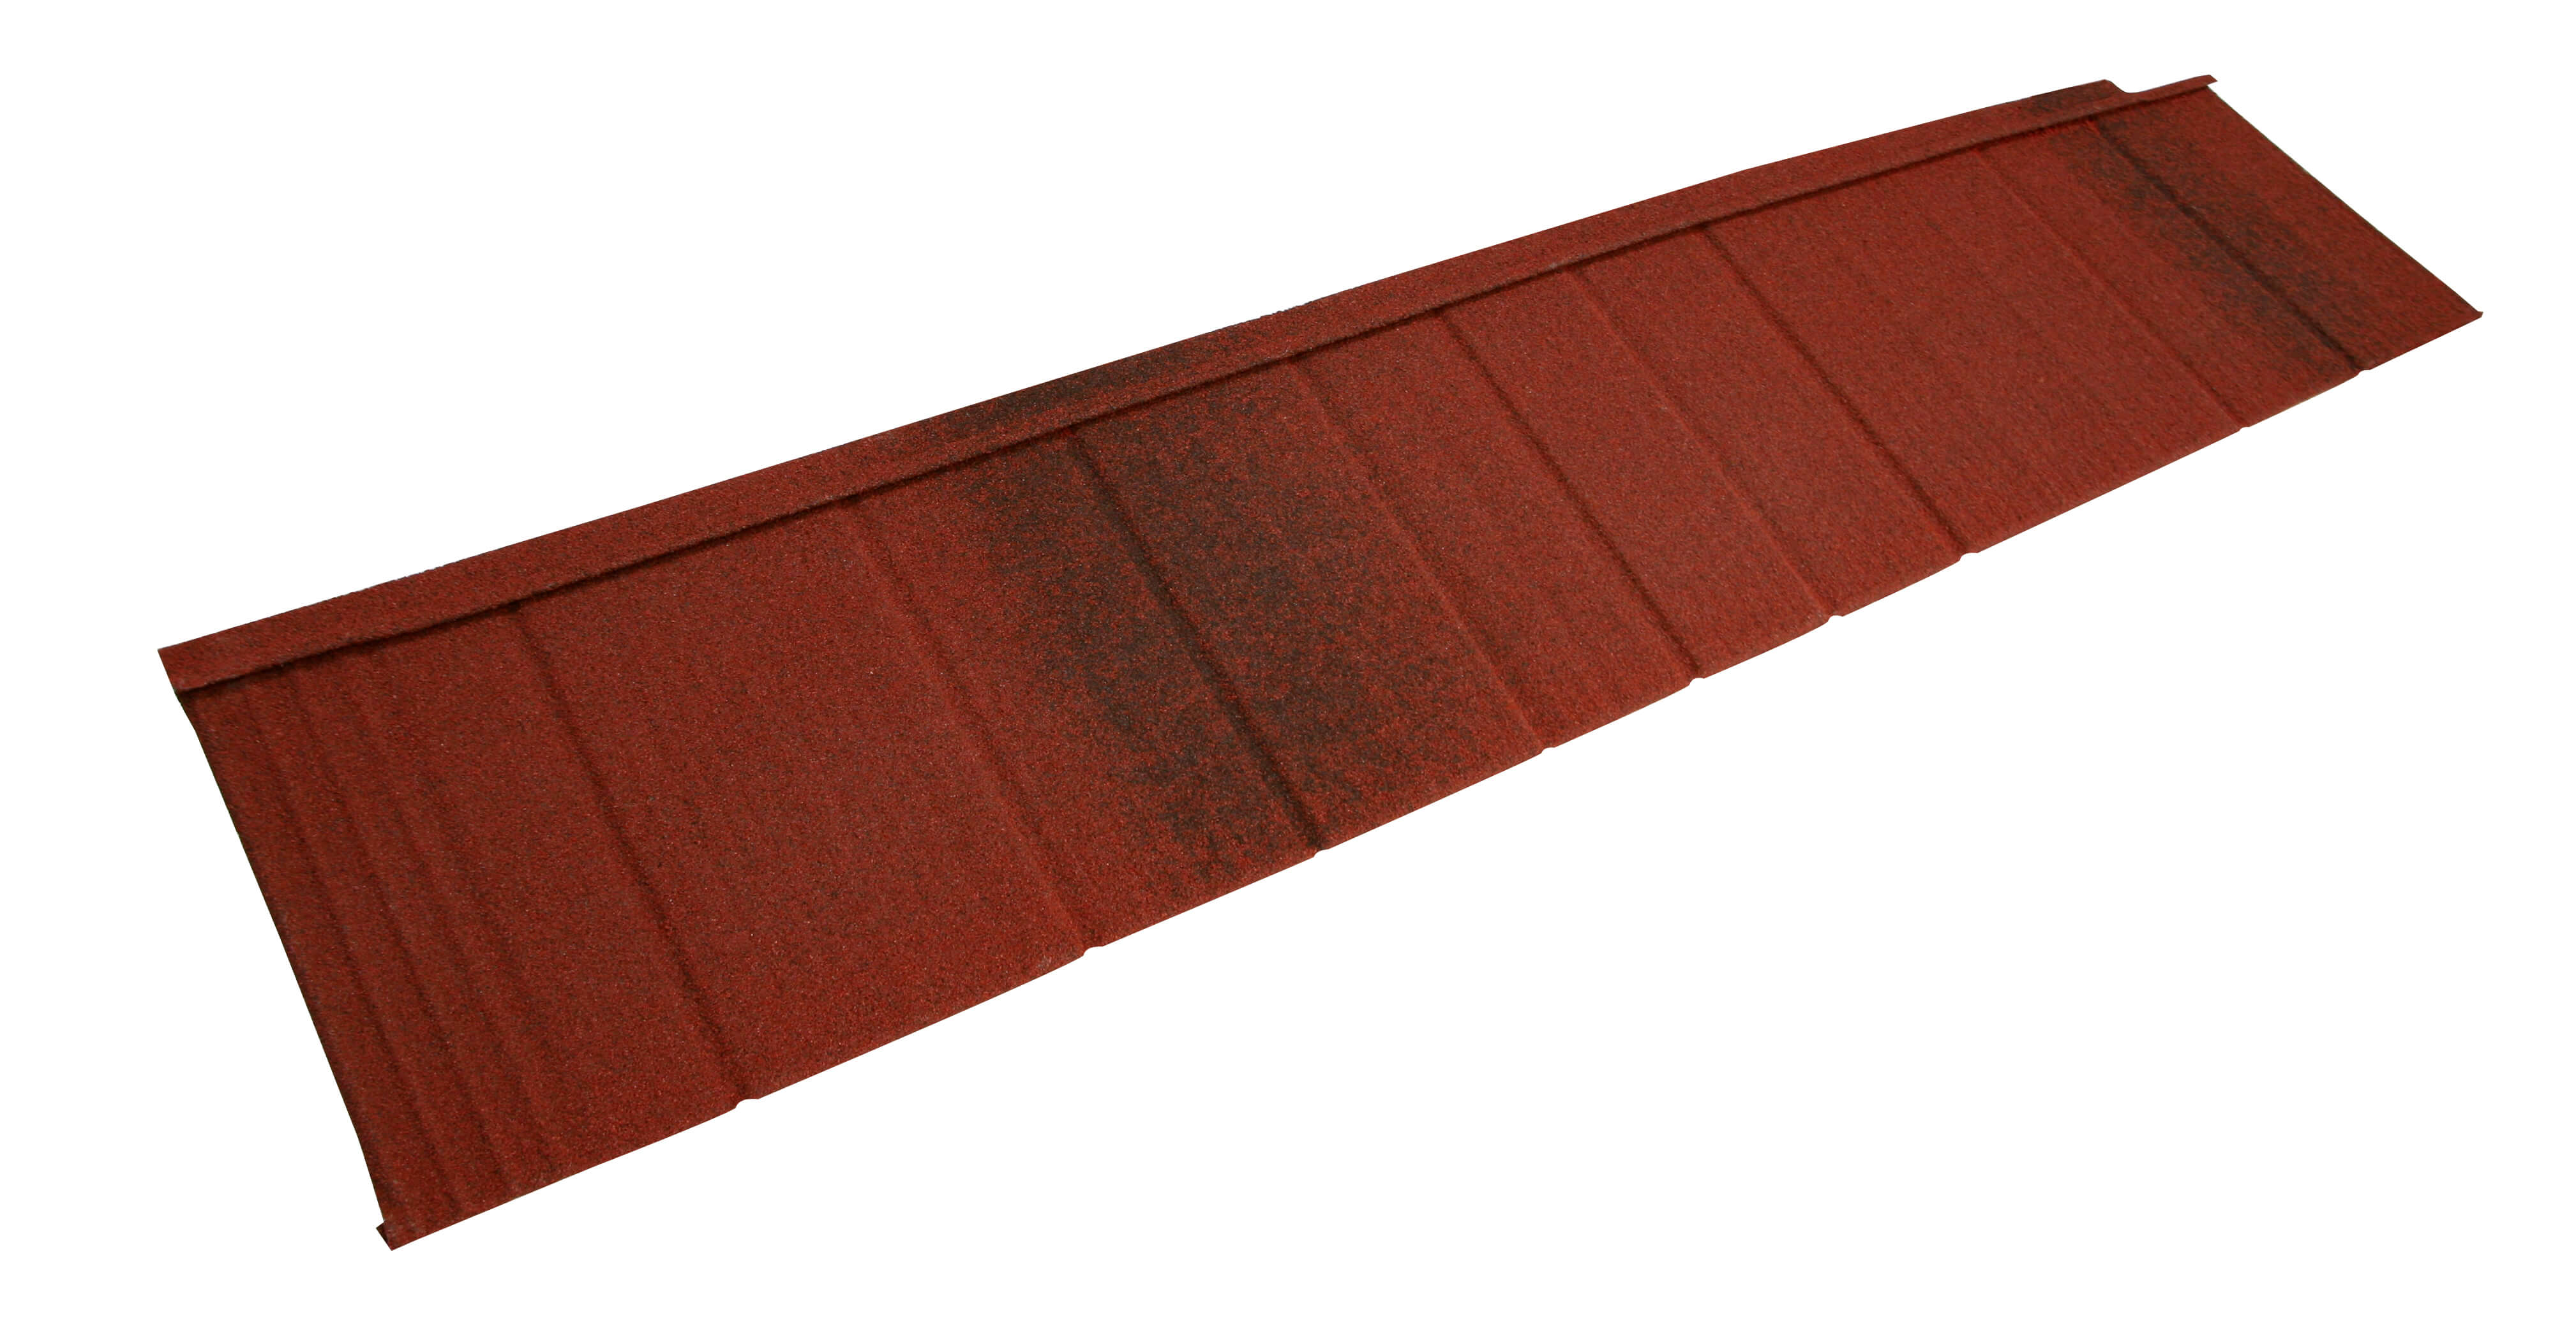 Metrotile Shingle Roofing and Cladding Tile in Antique Red